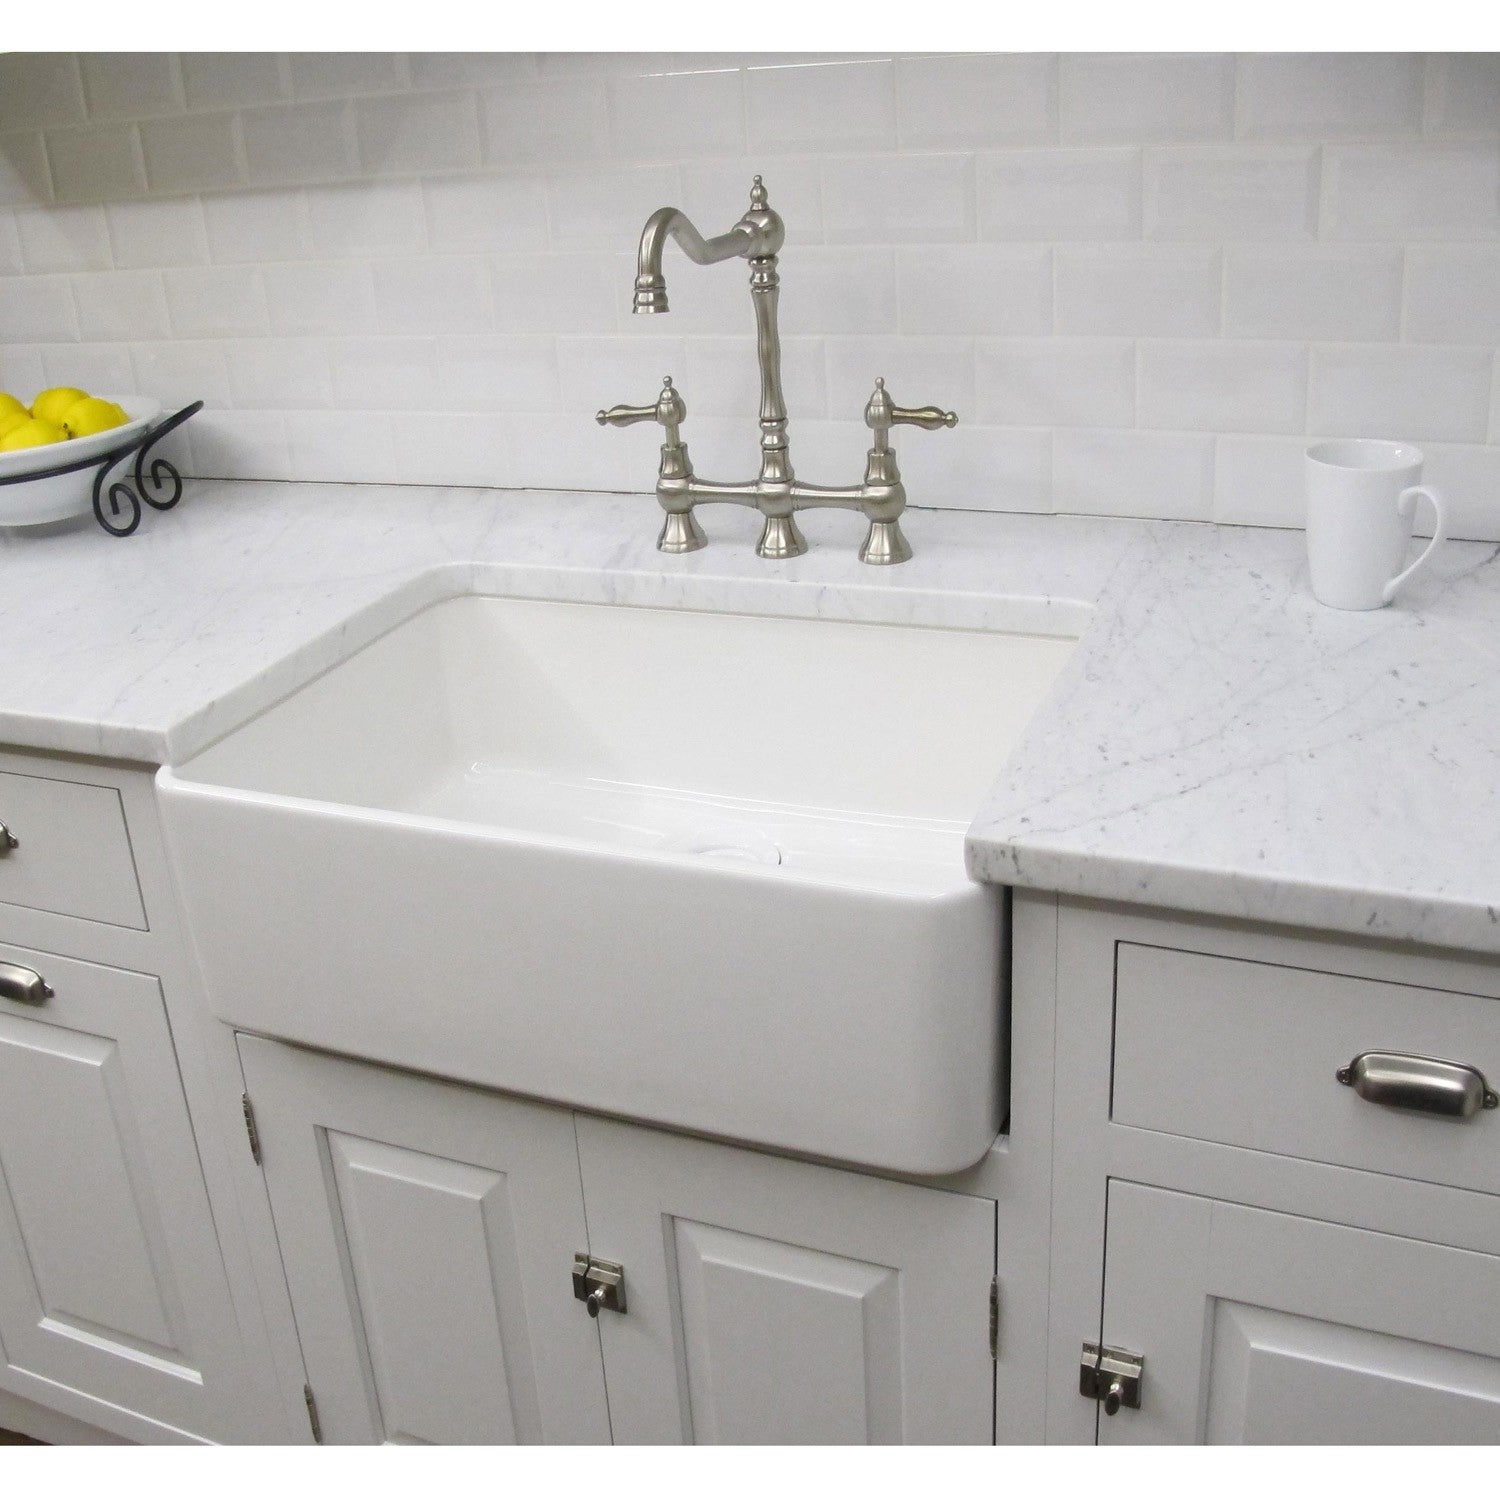 Fine Fixtures Fireclay Sutton 23 25 Inch White Farmhouse Kitchen Sink Free Shipping Today 6467220